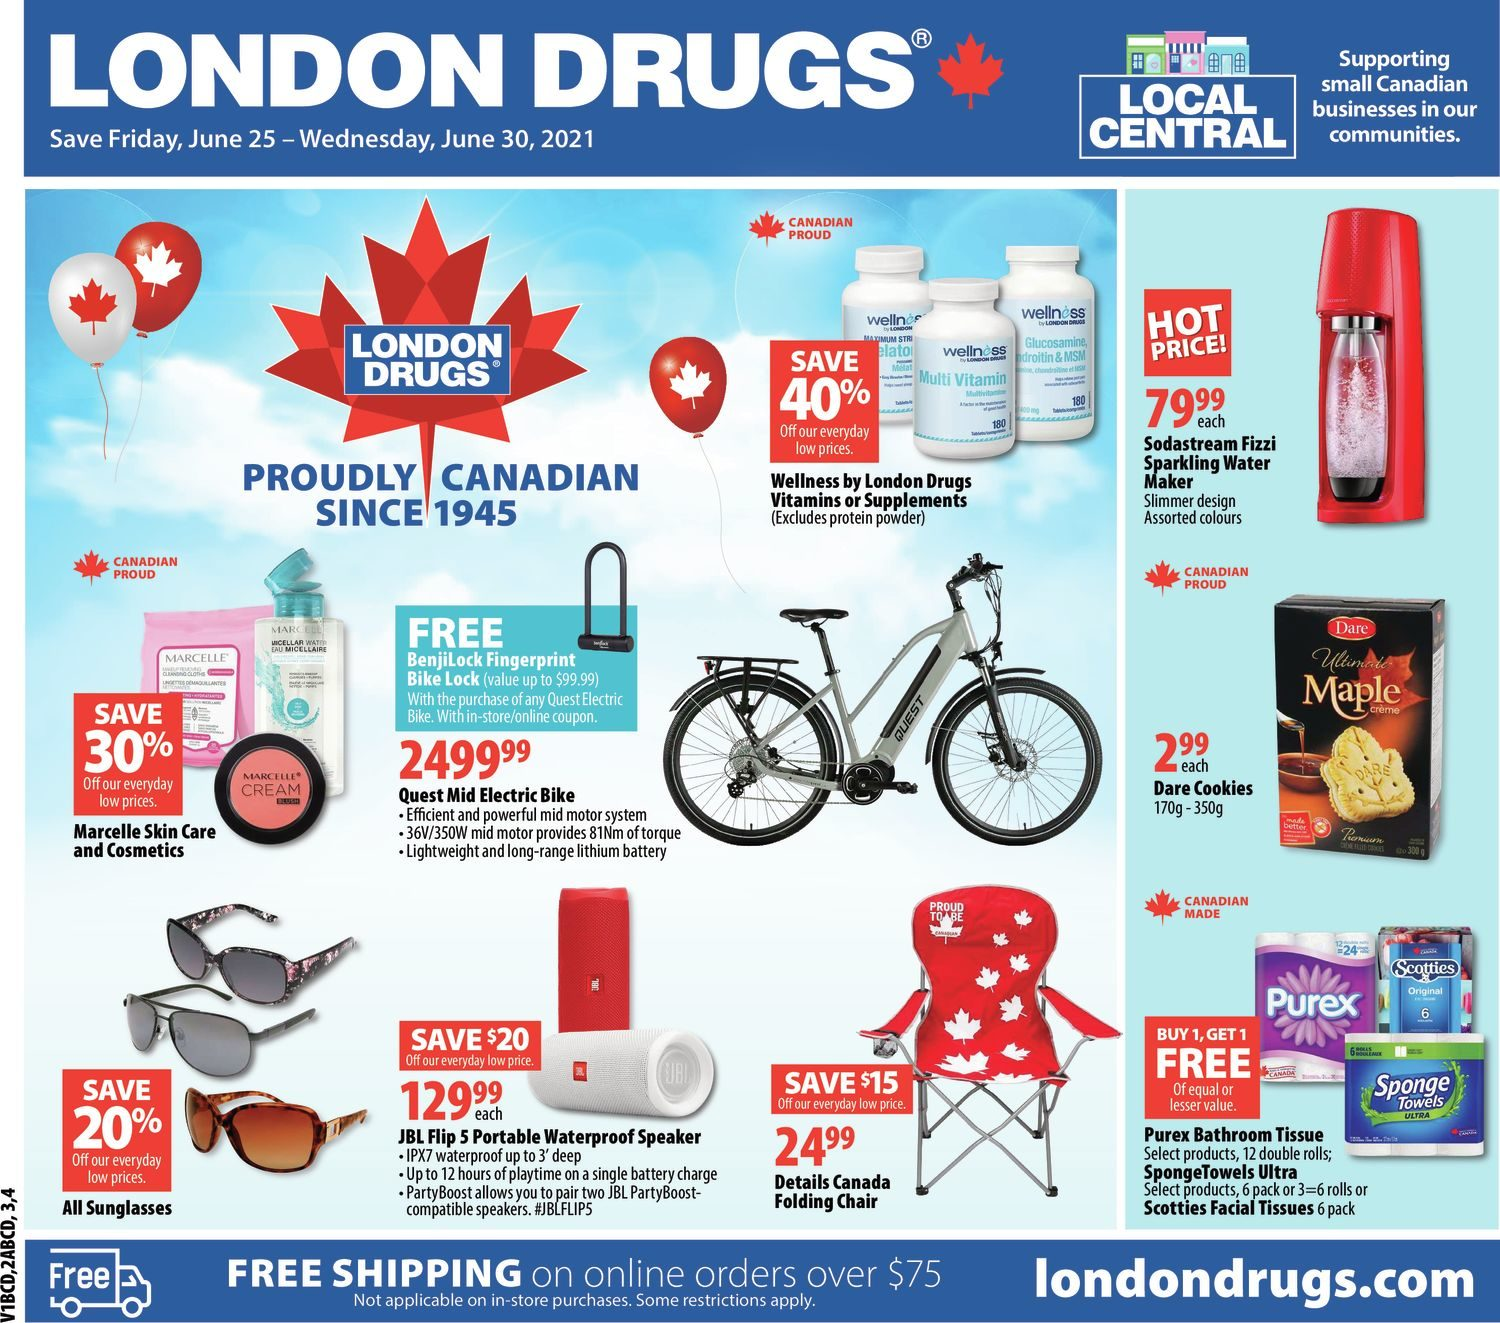 London Drugs - Weekly Flyer Specials